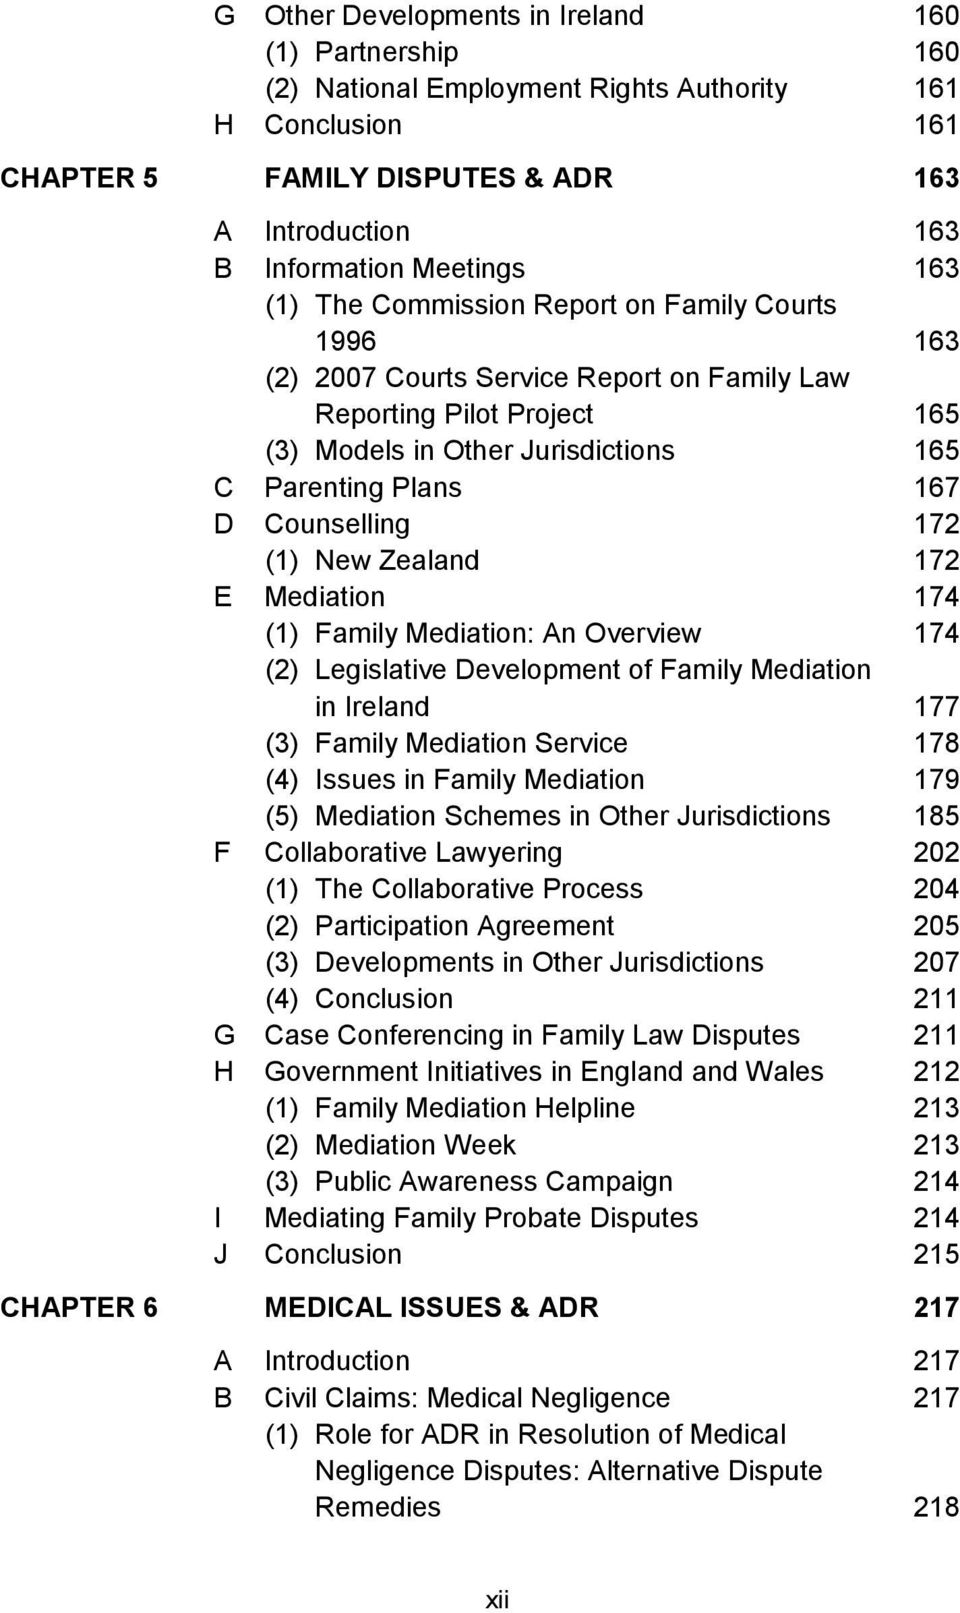 172 (1) New Zealand 172 E Mediation 174 (1) Family Mediation: An Overview 174 (2) Legislative Development of Family Mediation in Ireland 177 (3) Family Mediation Service 178 (4) Issues in Family